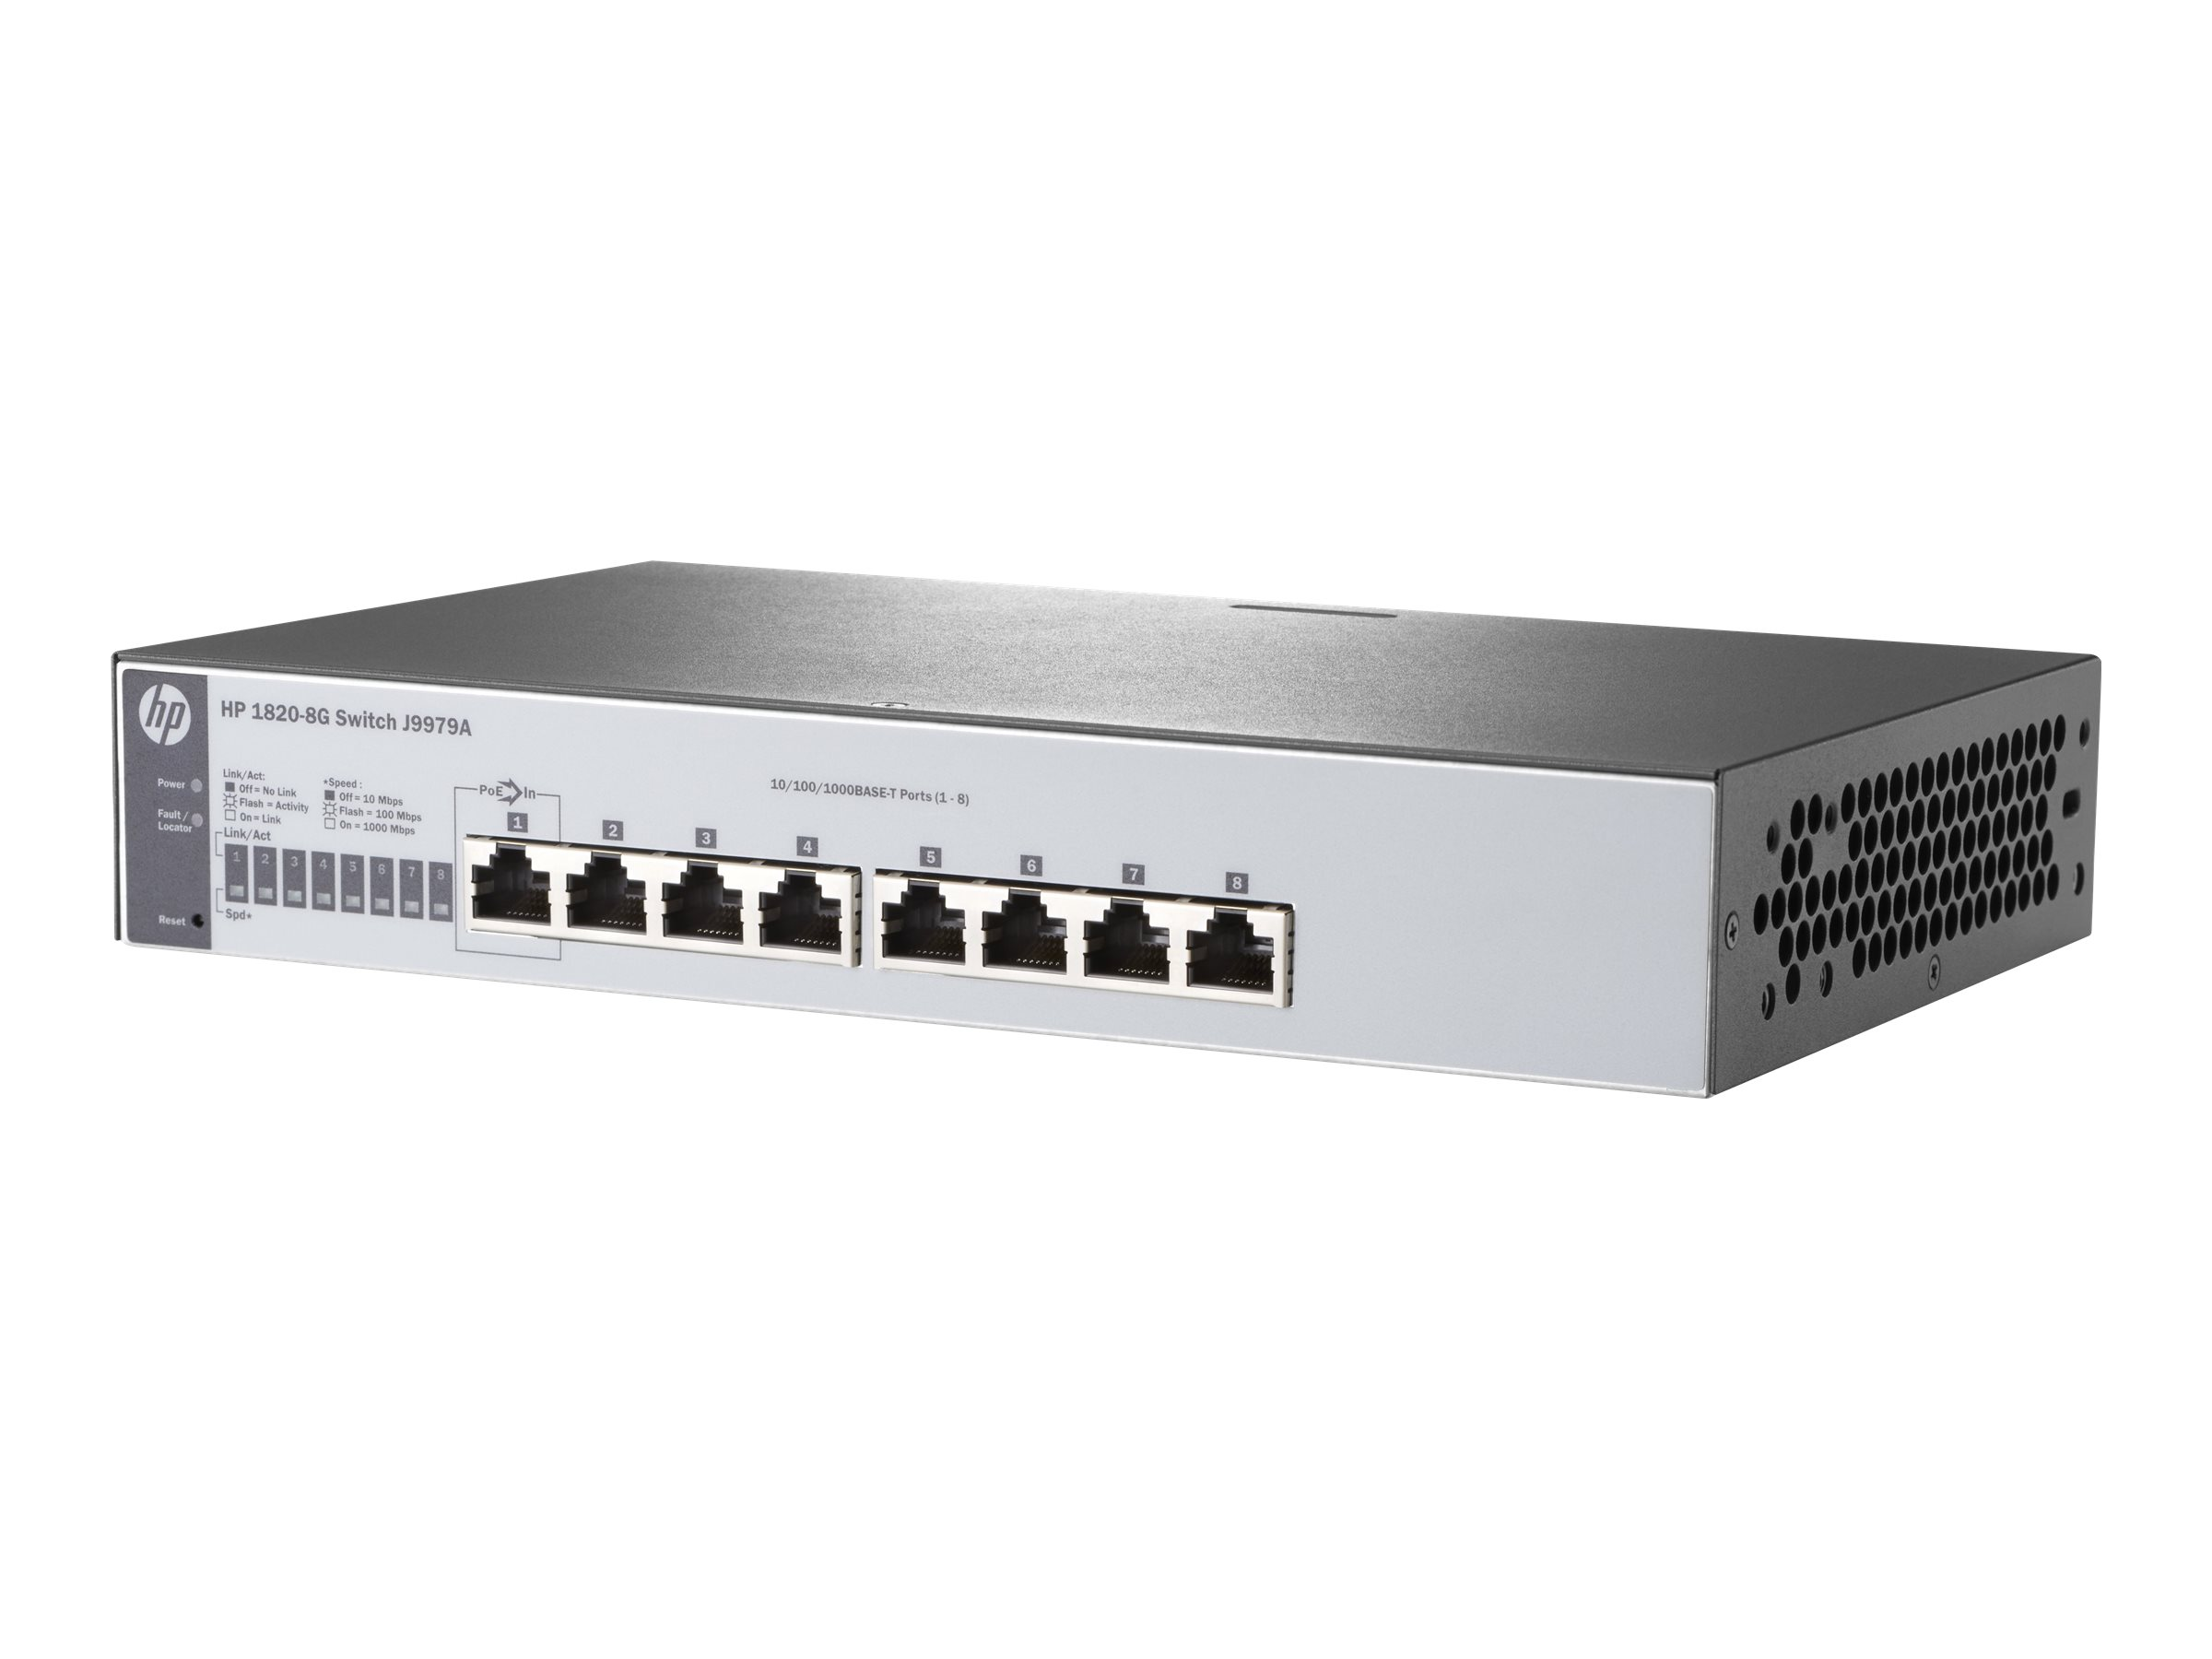 HPE 1820-8G - switch - 8 ports - managed - rack-mountable